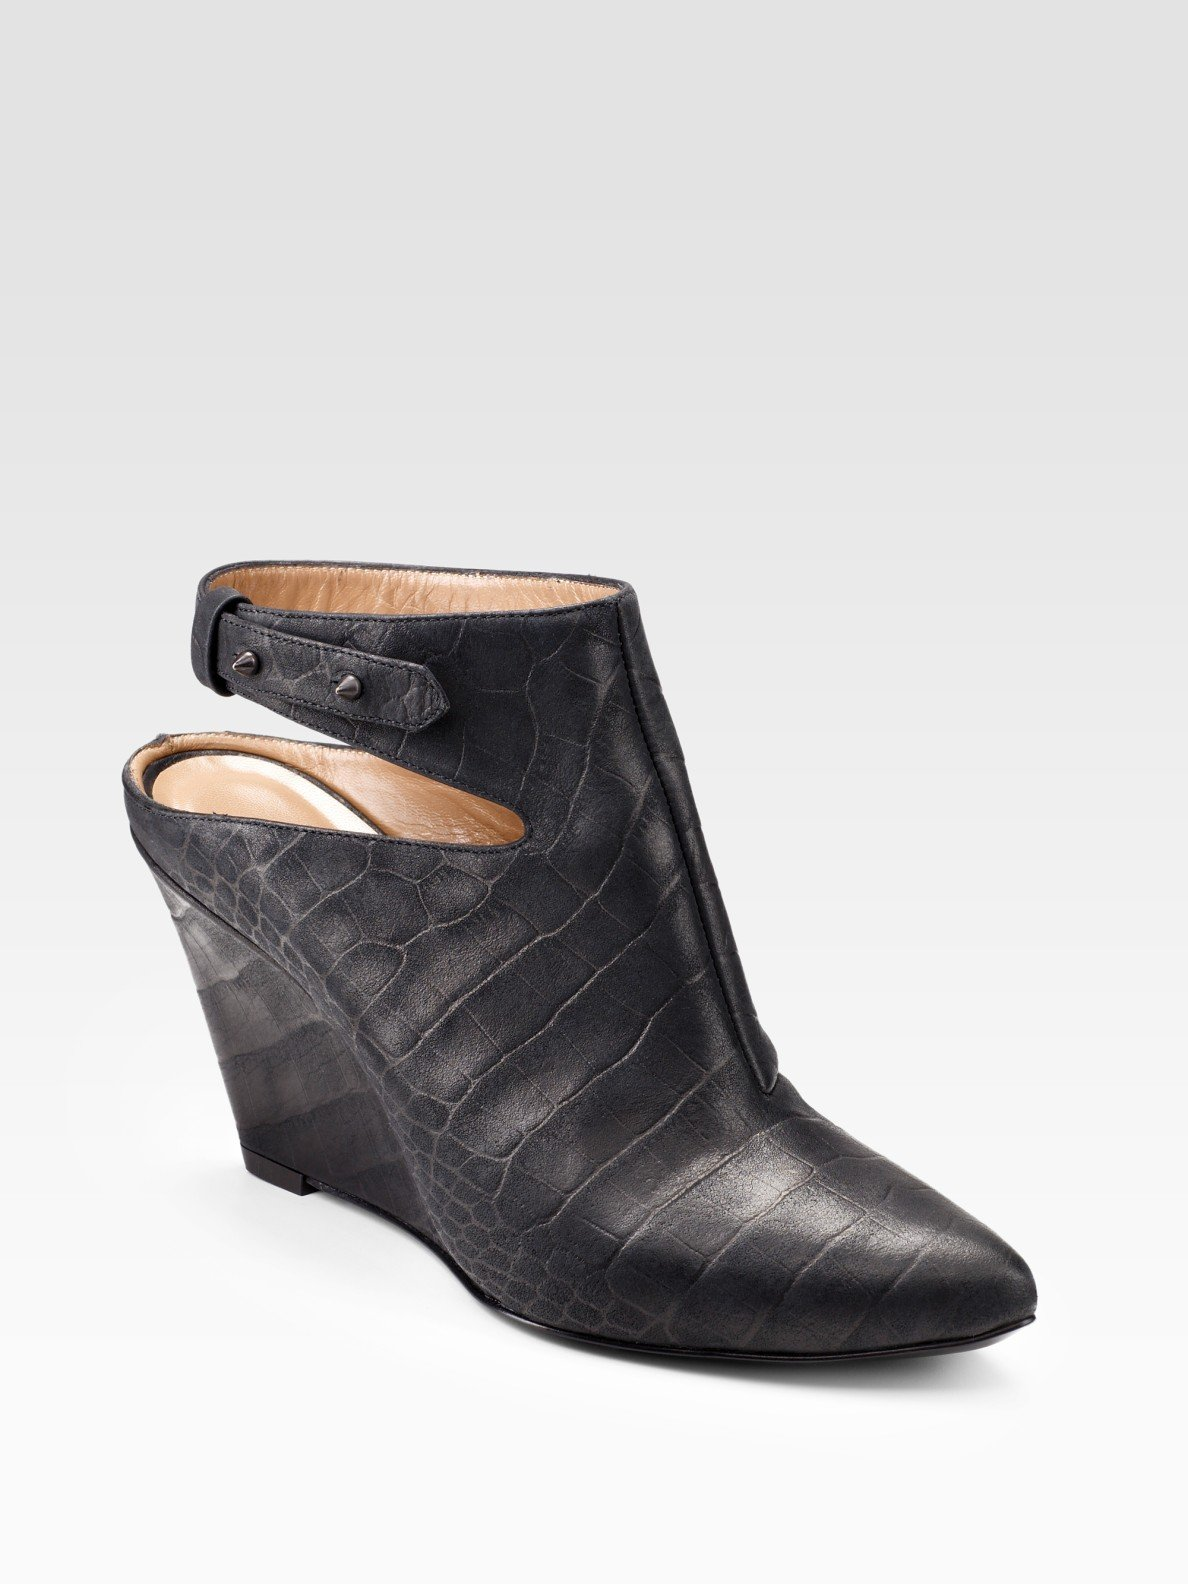 Sigerson Morrison Croc Embossed Leather Wedge Ankle Boots